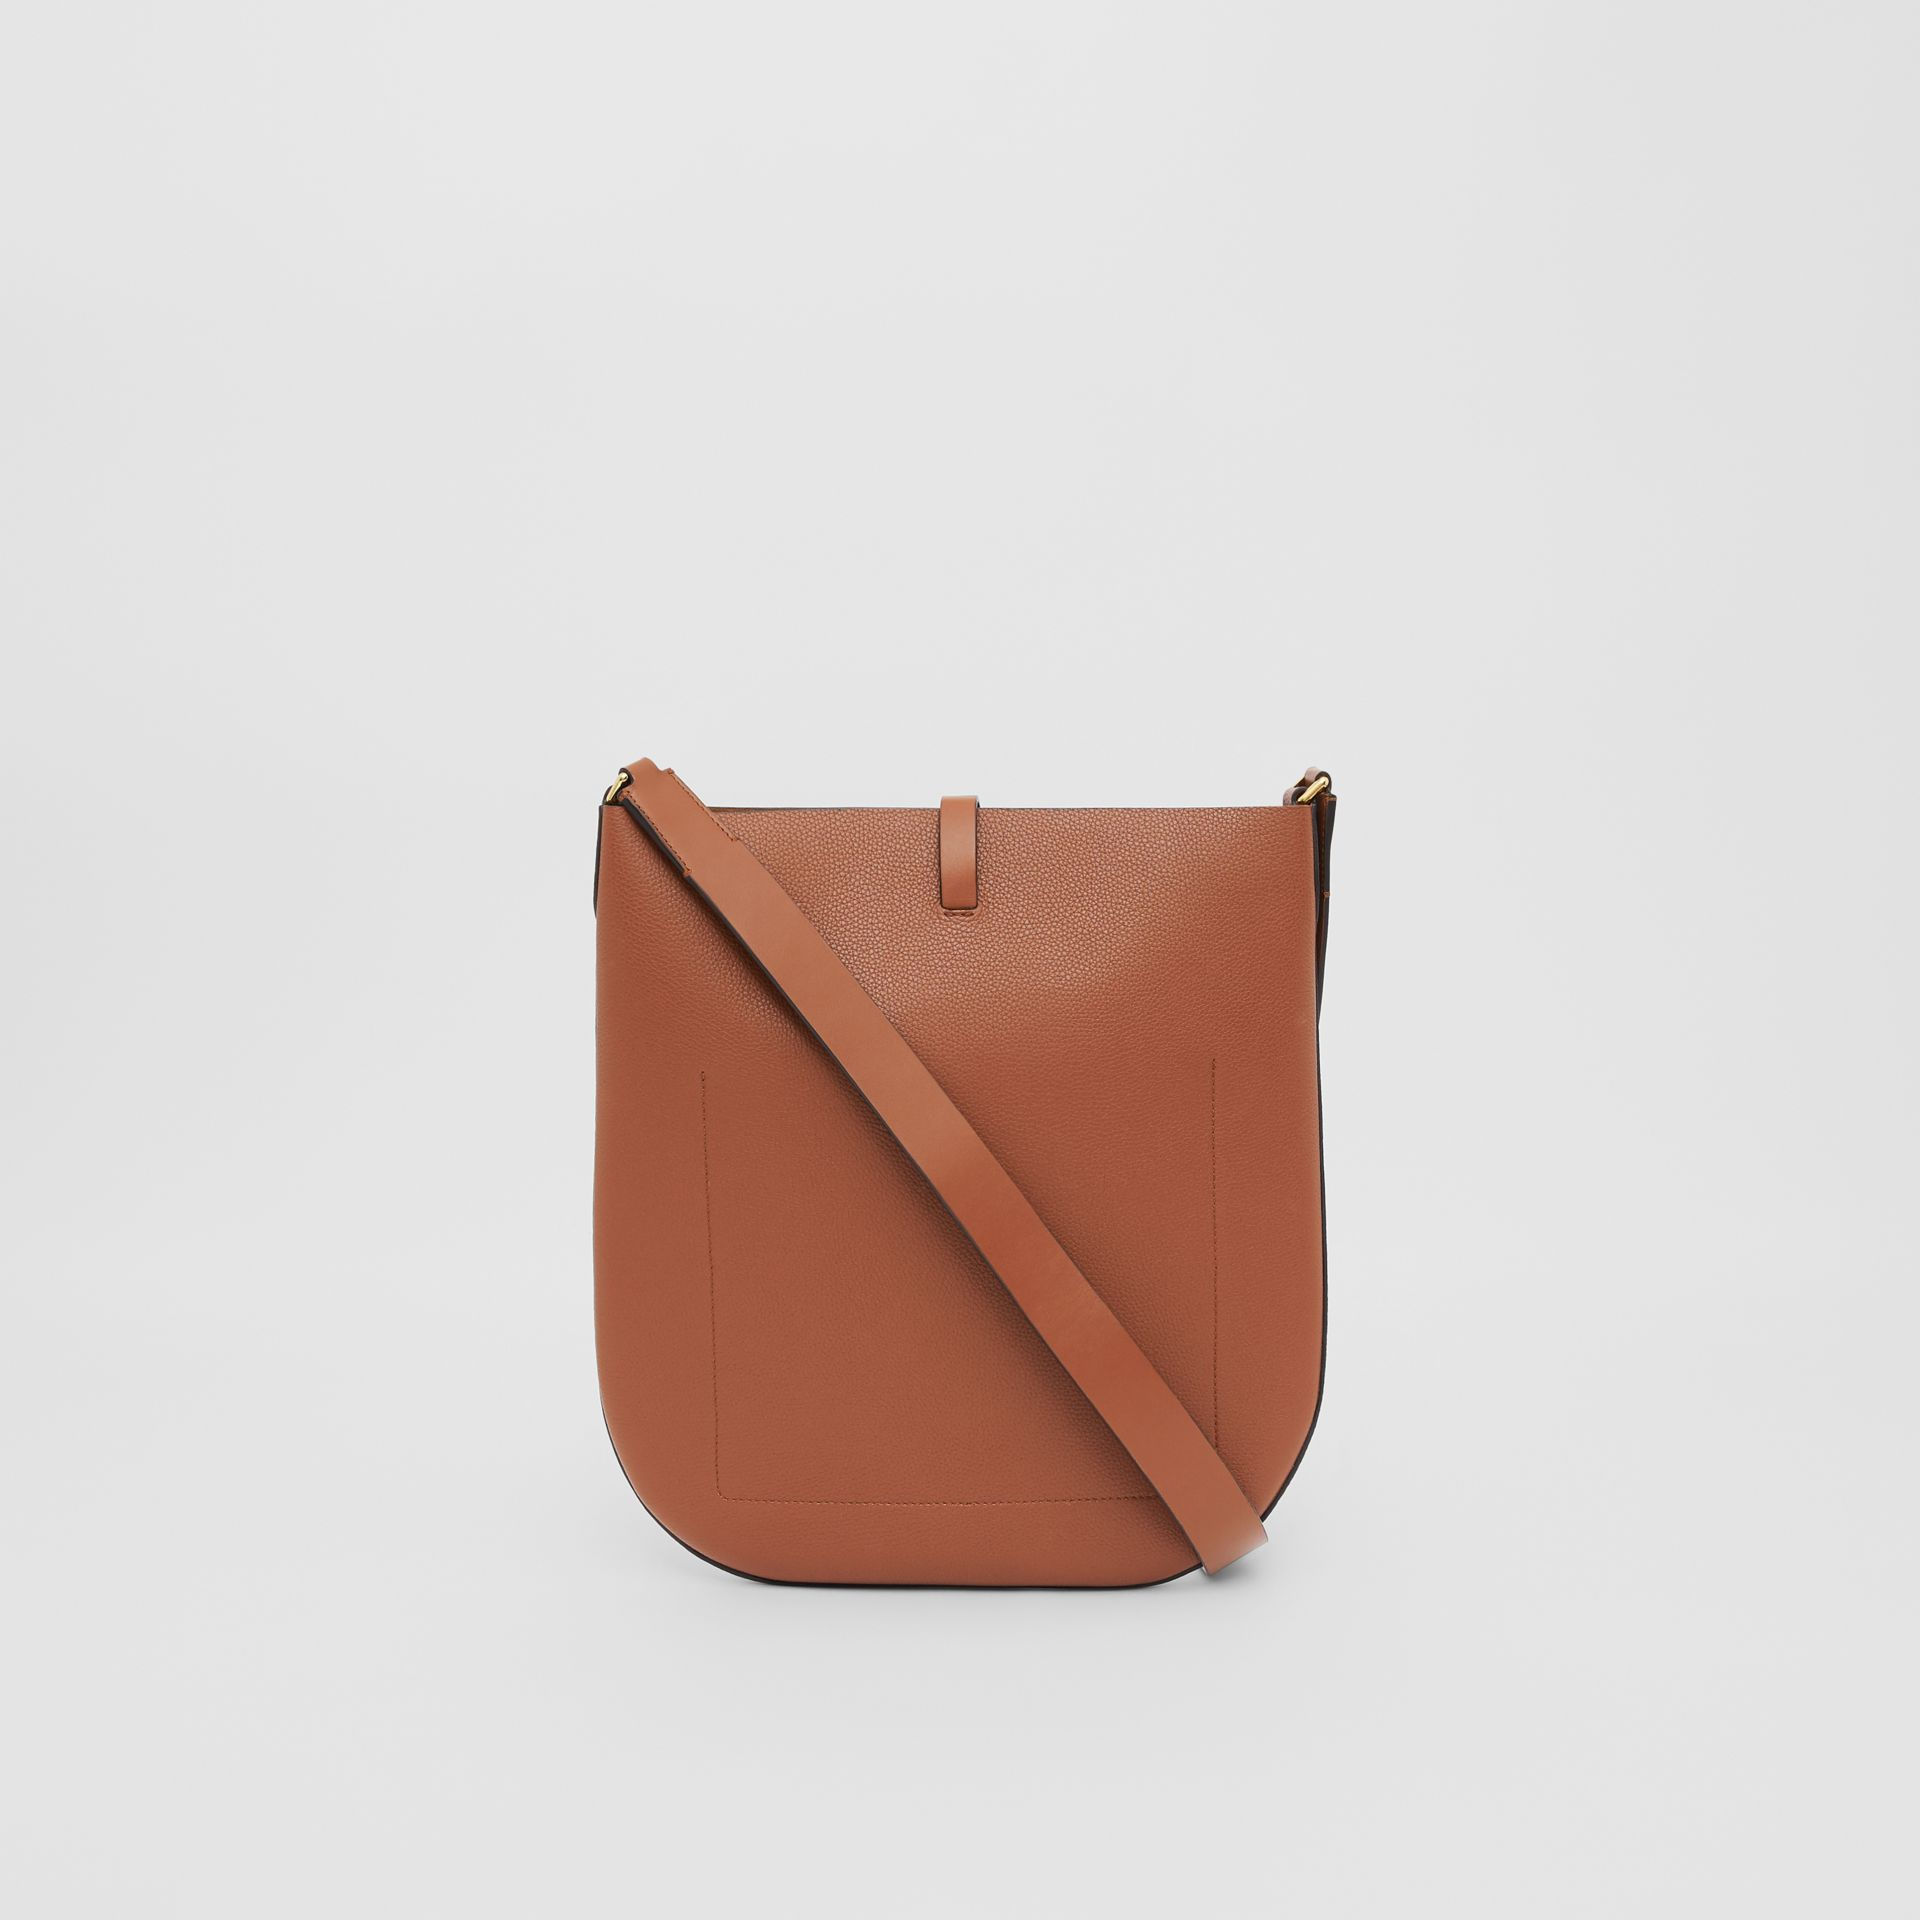 Grainy Leather Anne Bag in Tan - Women | Burberry United Kingdom - gallery image 5